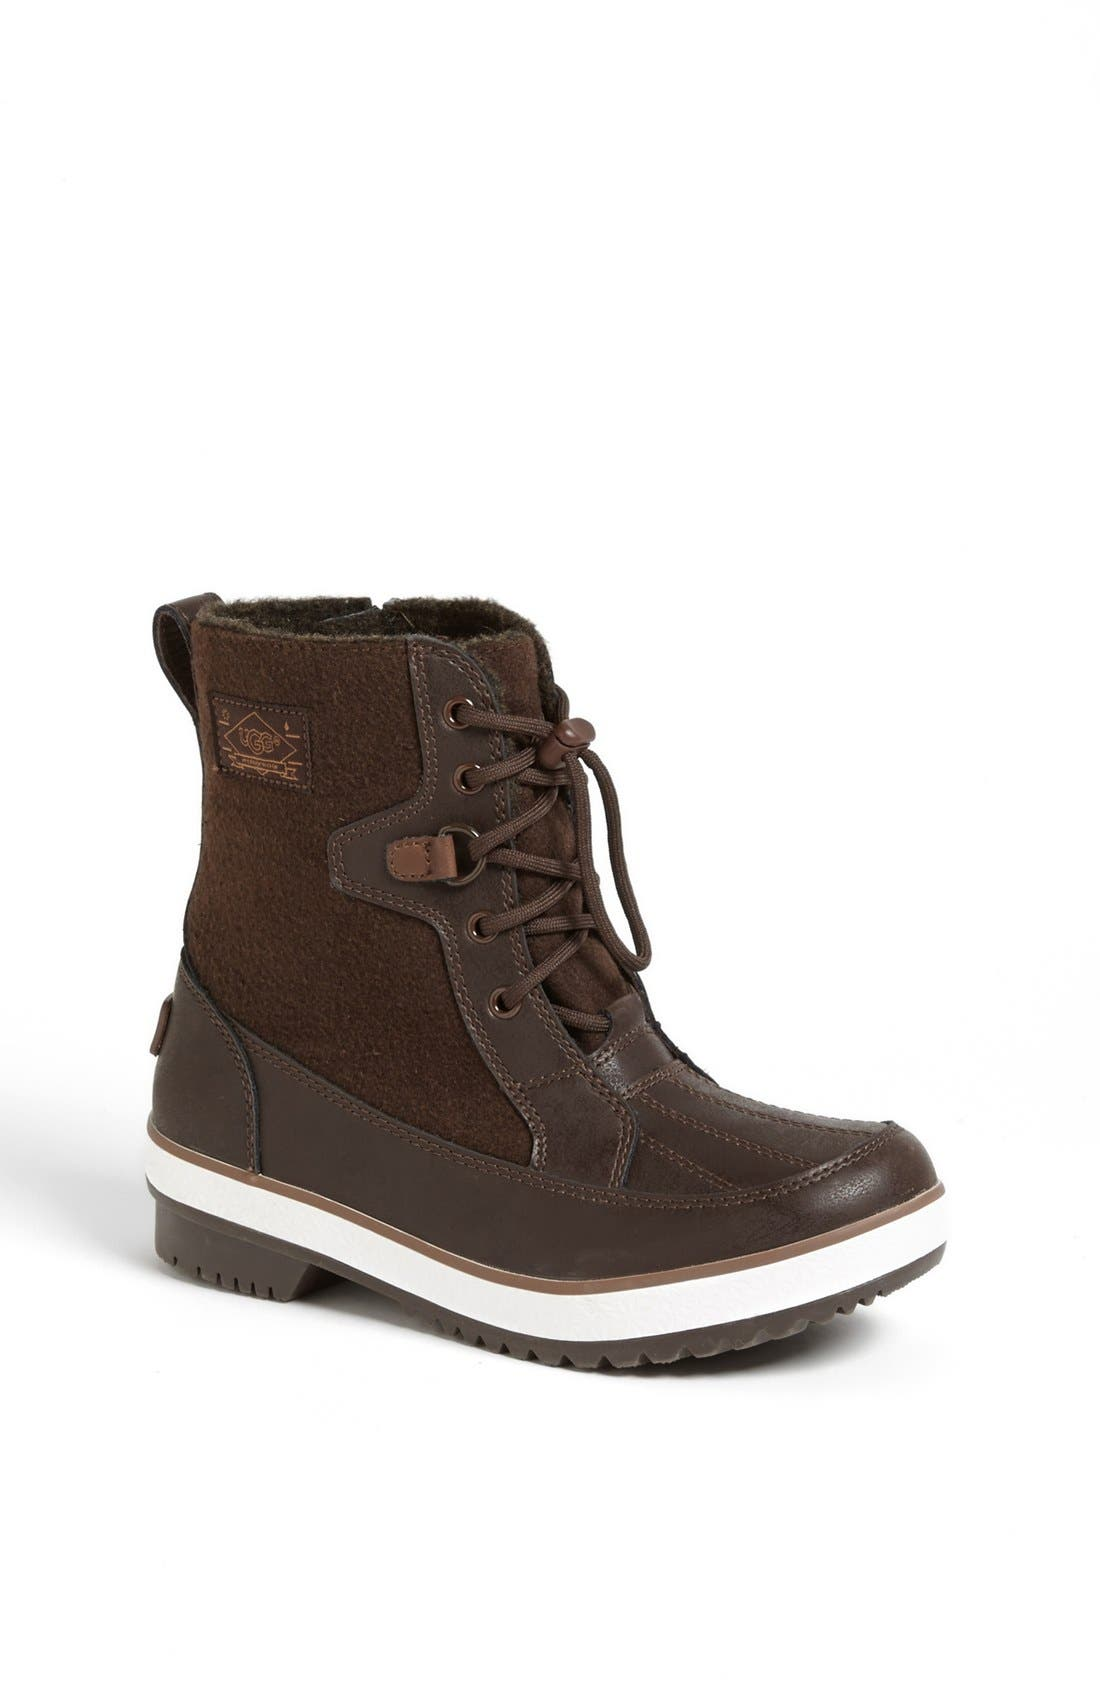 Alternate Image 1 Selected - UGG® Australia 'Cabiro' Waterproof Boot (Little Kid & Big Kid)